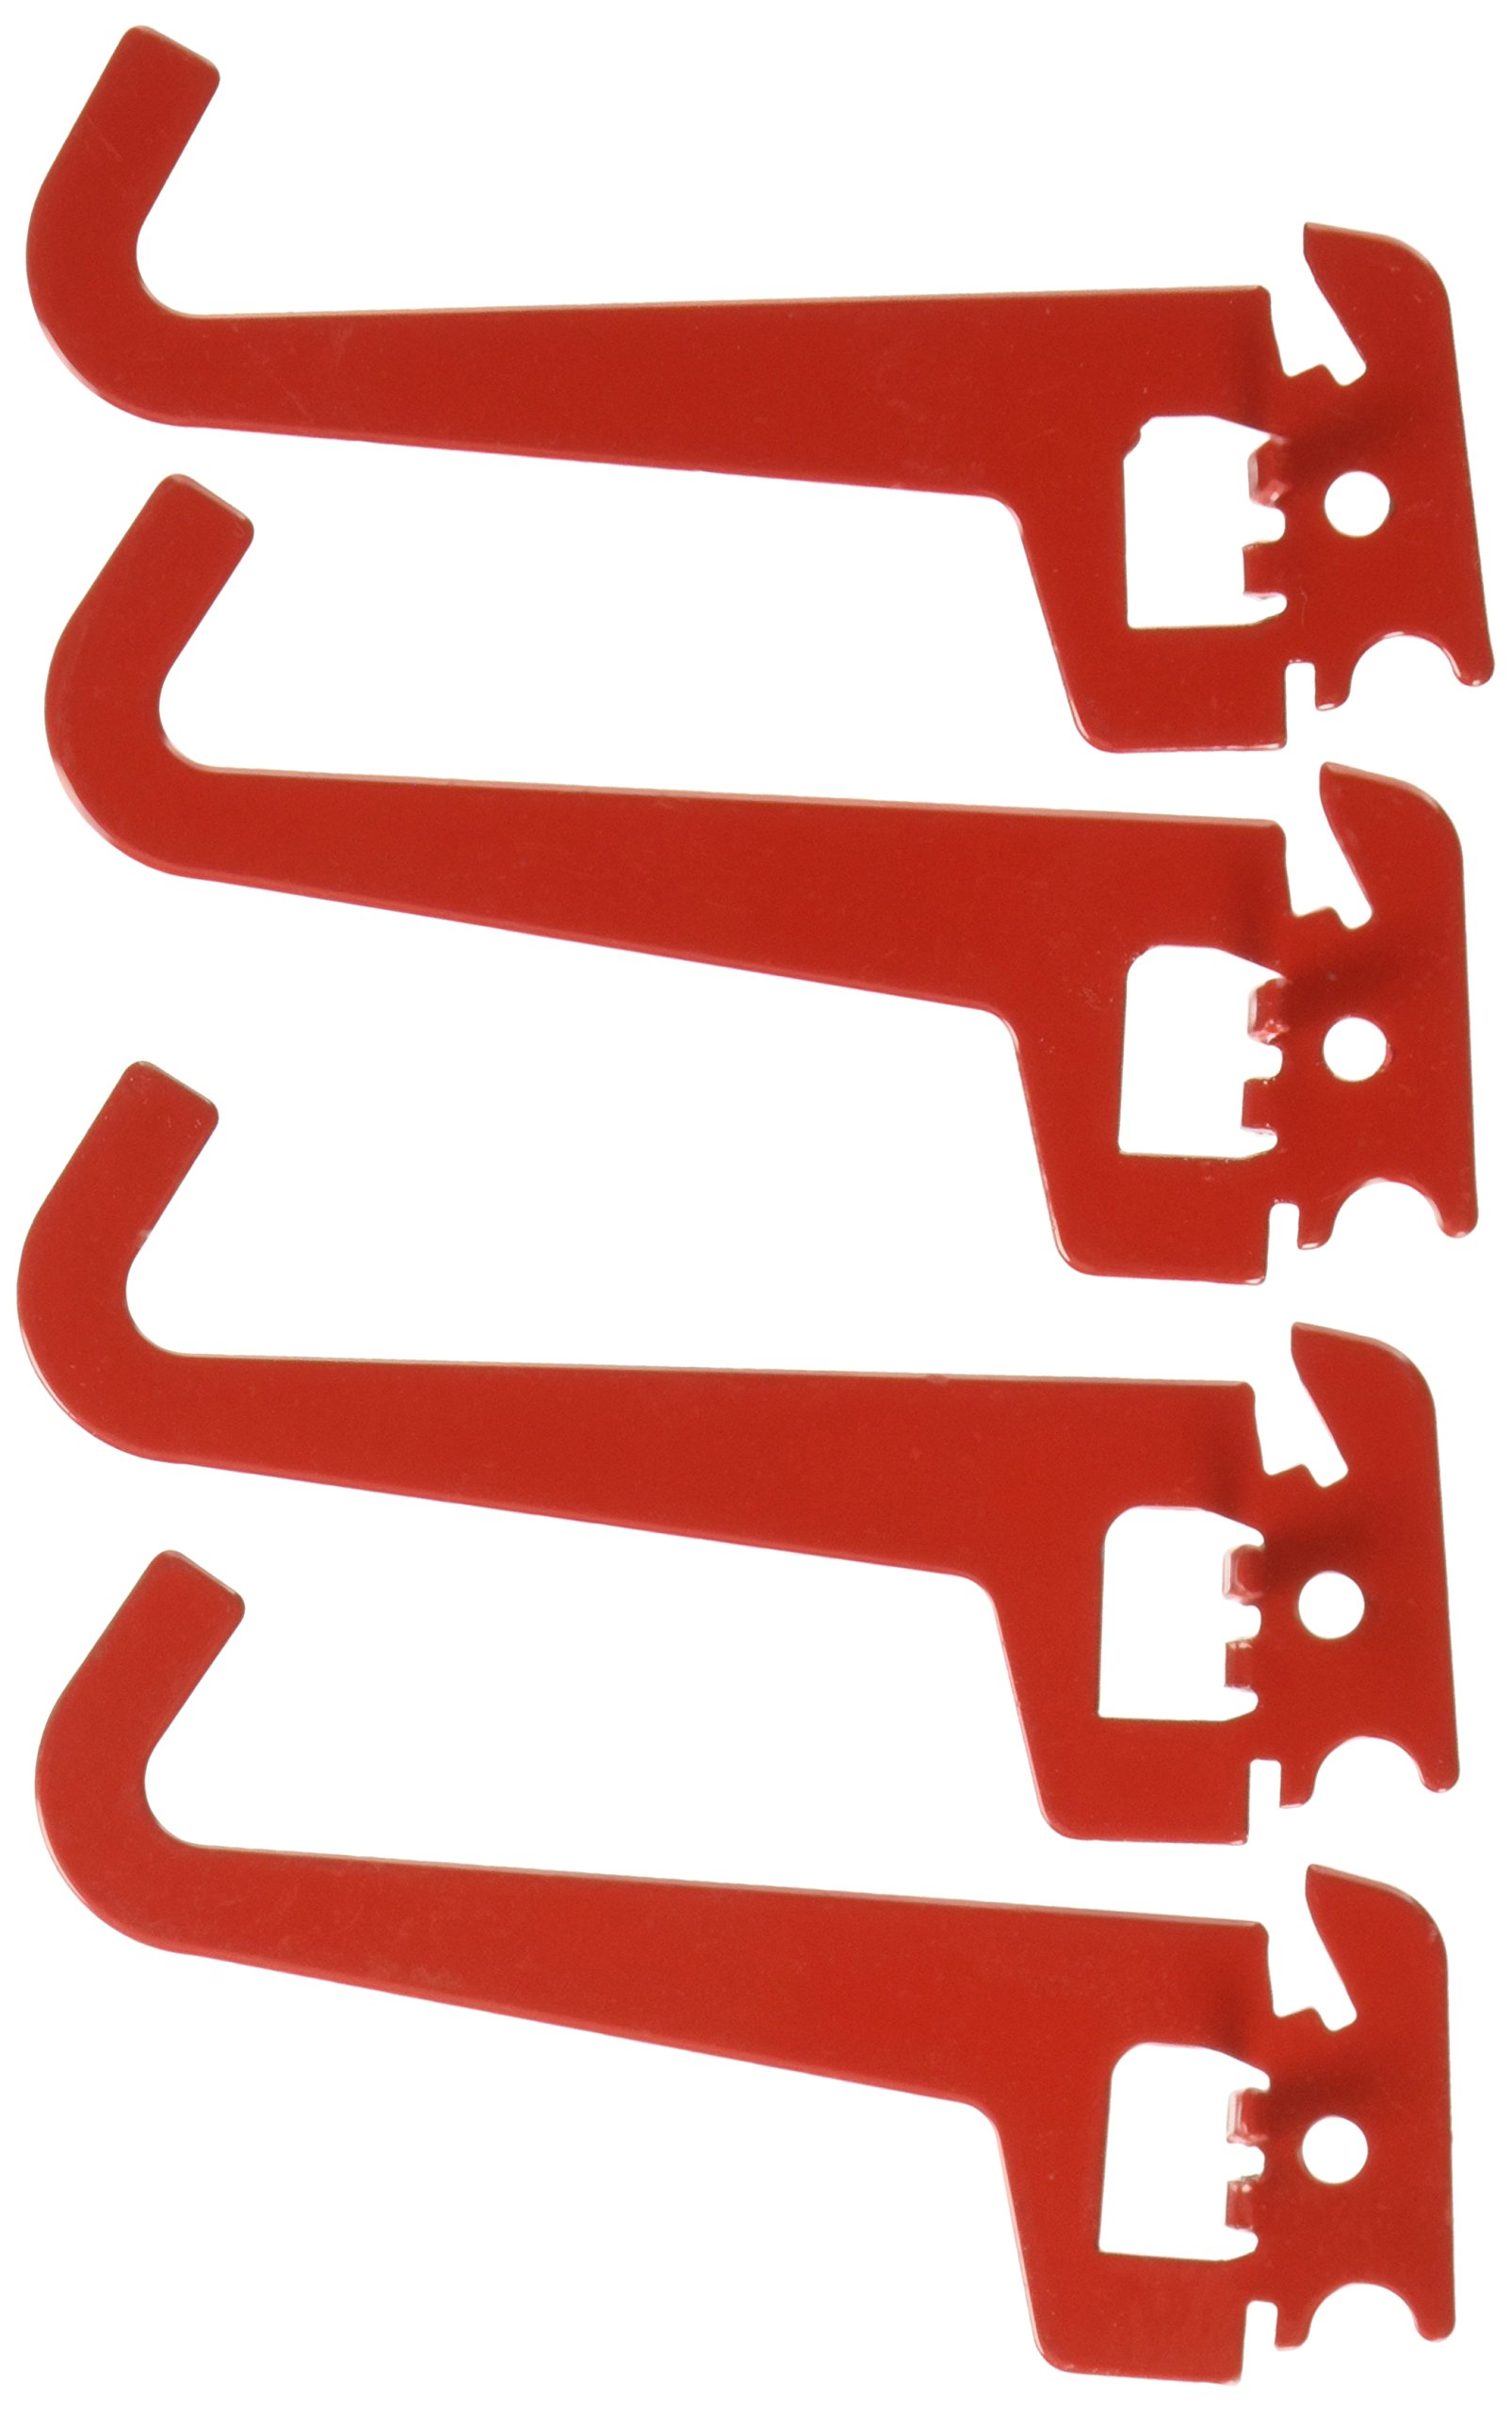 "Wall Control 10-HZ-103 R Pegboard 3-1/2"" Reach Curved Tip Slotted Hook Pack Slotted Metal Hooks for Wall Control Pegboard Only, Red"